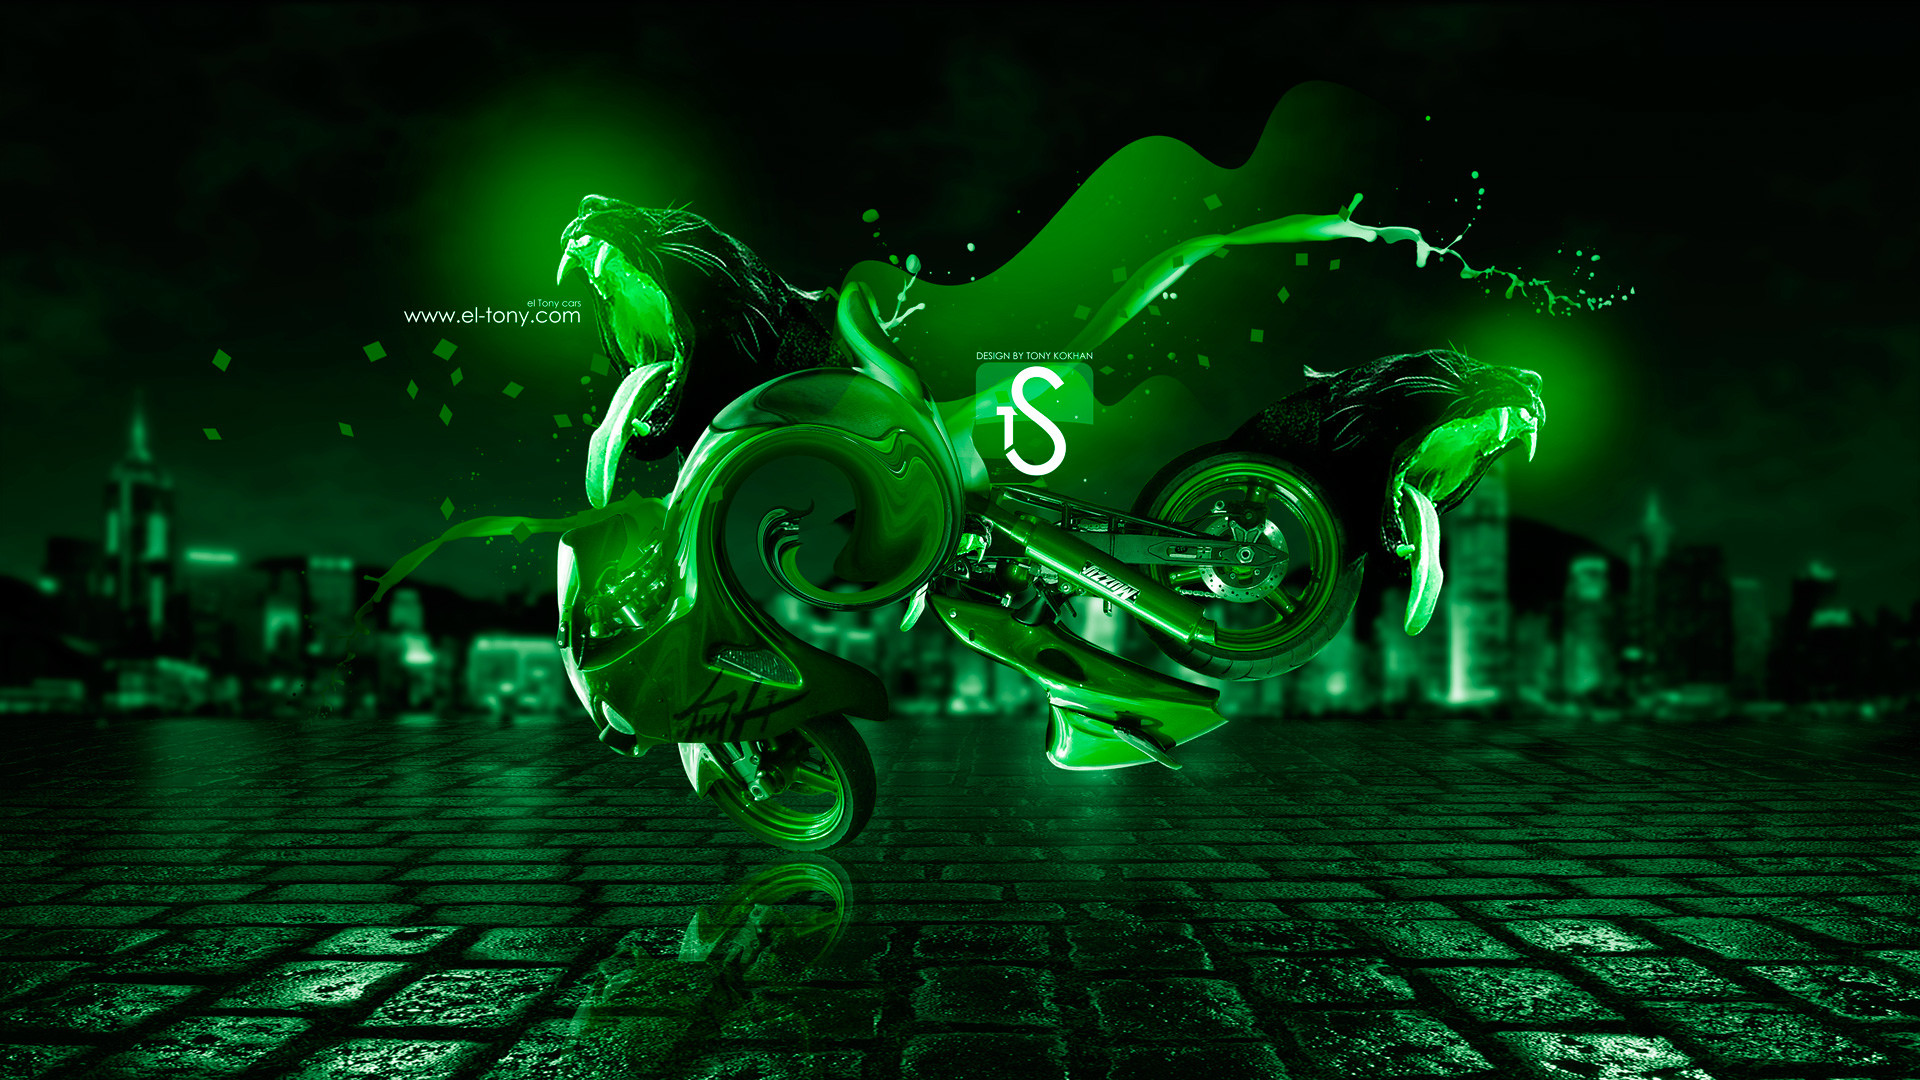 1920x1080 Neon Green Wallpaper Design Suzuki hayabusa fantasy panter